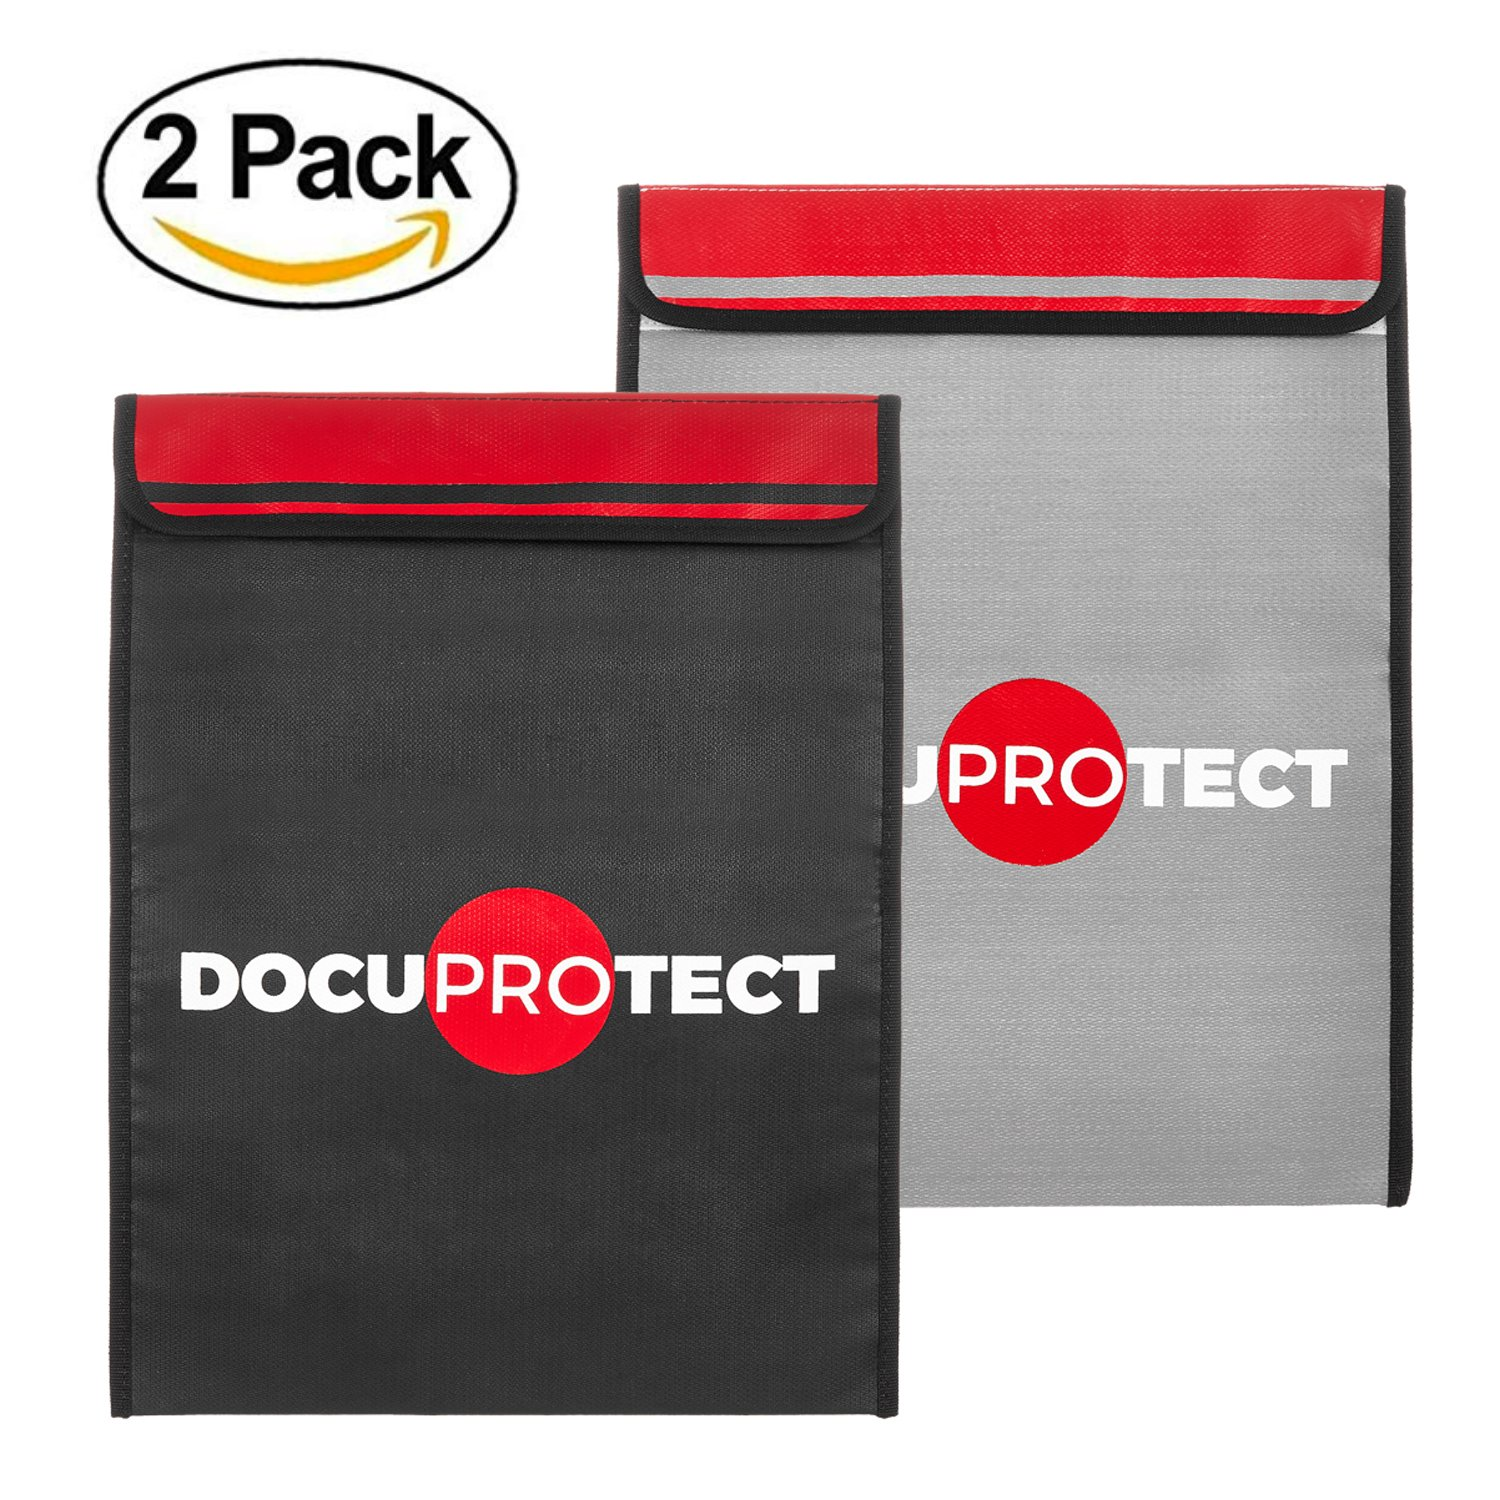 """Fireproof Document Bags - DocuProtect Set of Two 16"""" x 12"""" Non-Itchy Silicone Coated Fire Resistant Safe and Money Bag for Storing Documents, Money, Jewelry, and Passports"""